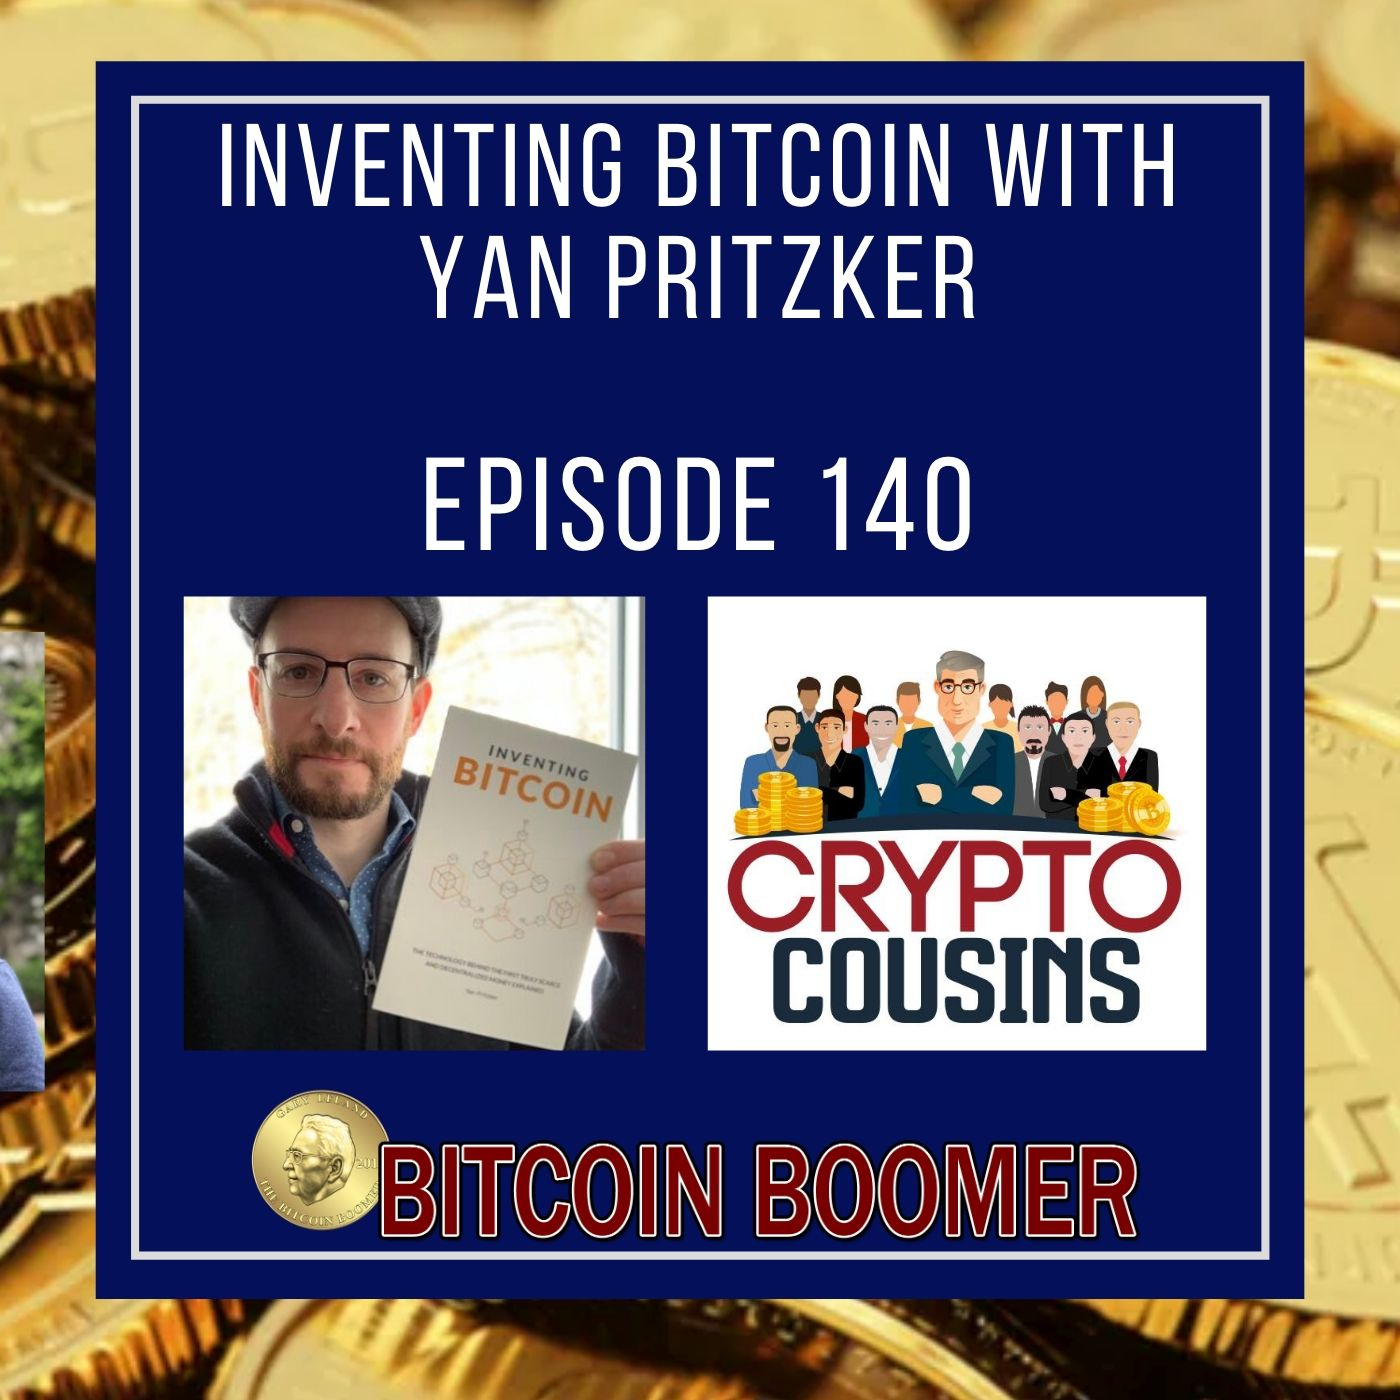 Inventing Bitcoin With Yan Pritzker